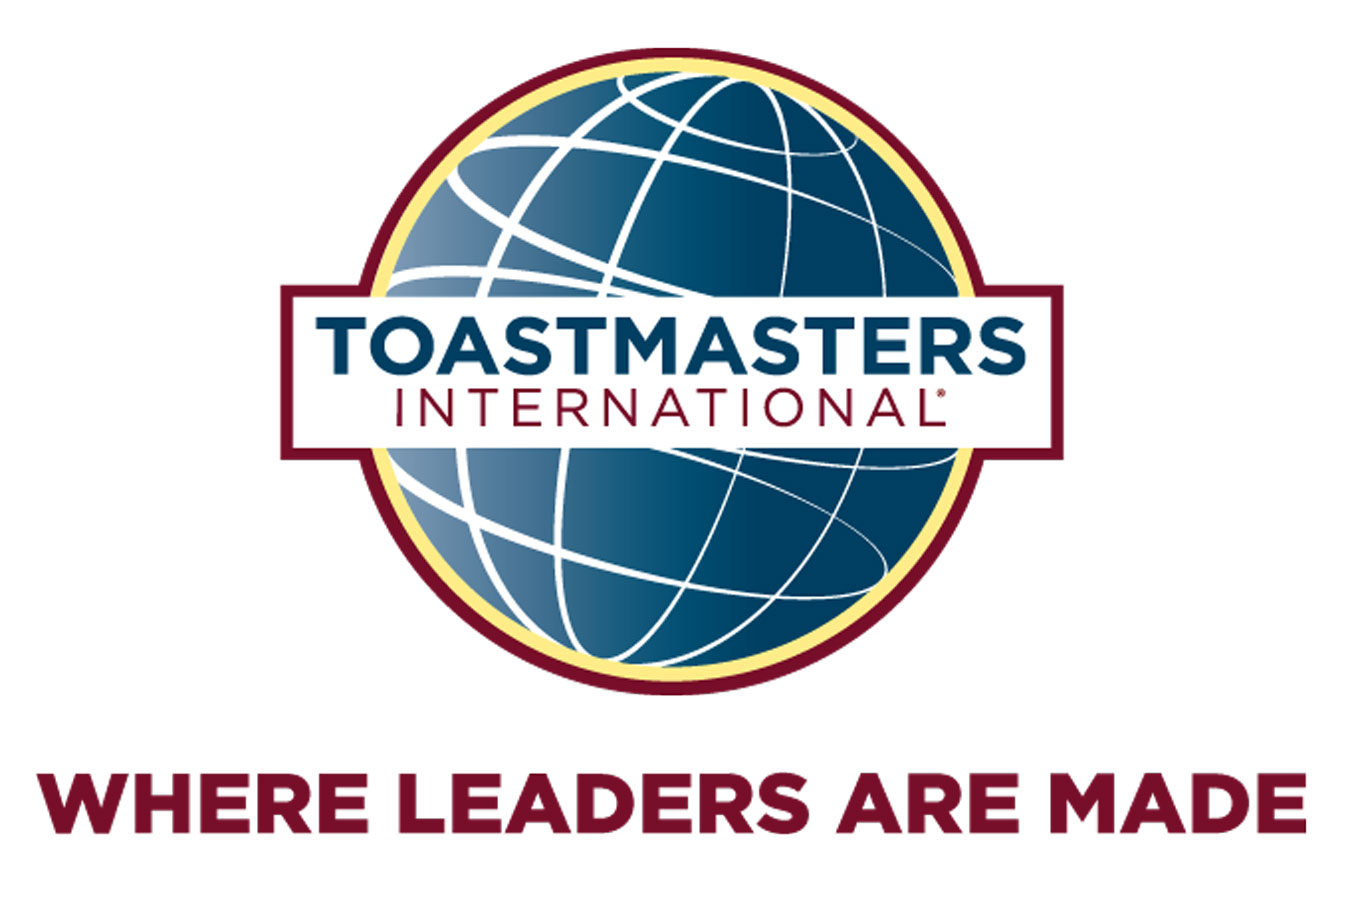 h-toastmasters-fodor-klaudia-where-leaders-are-made-logo.jpg